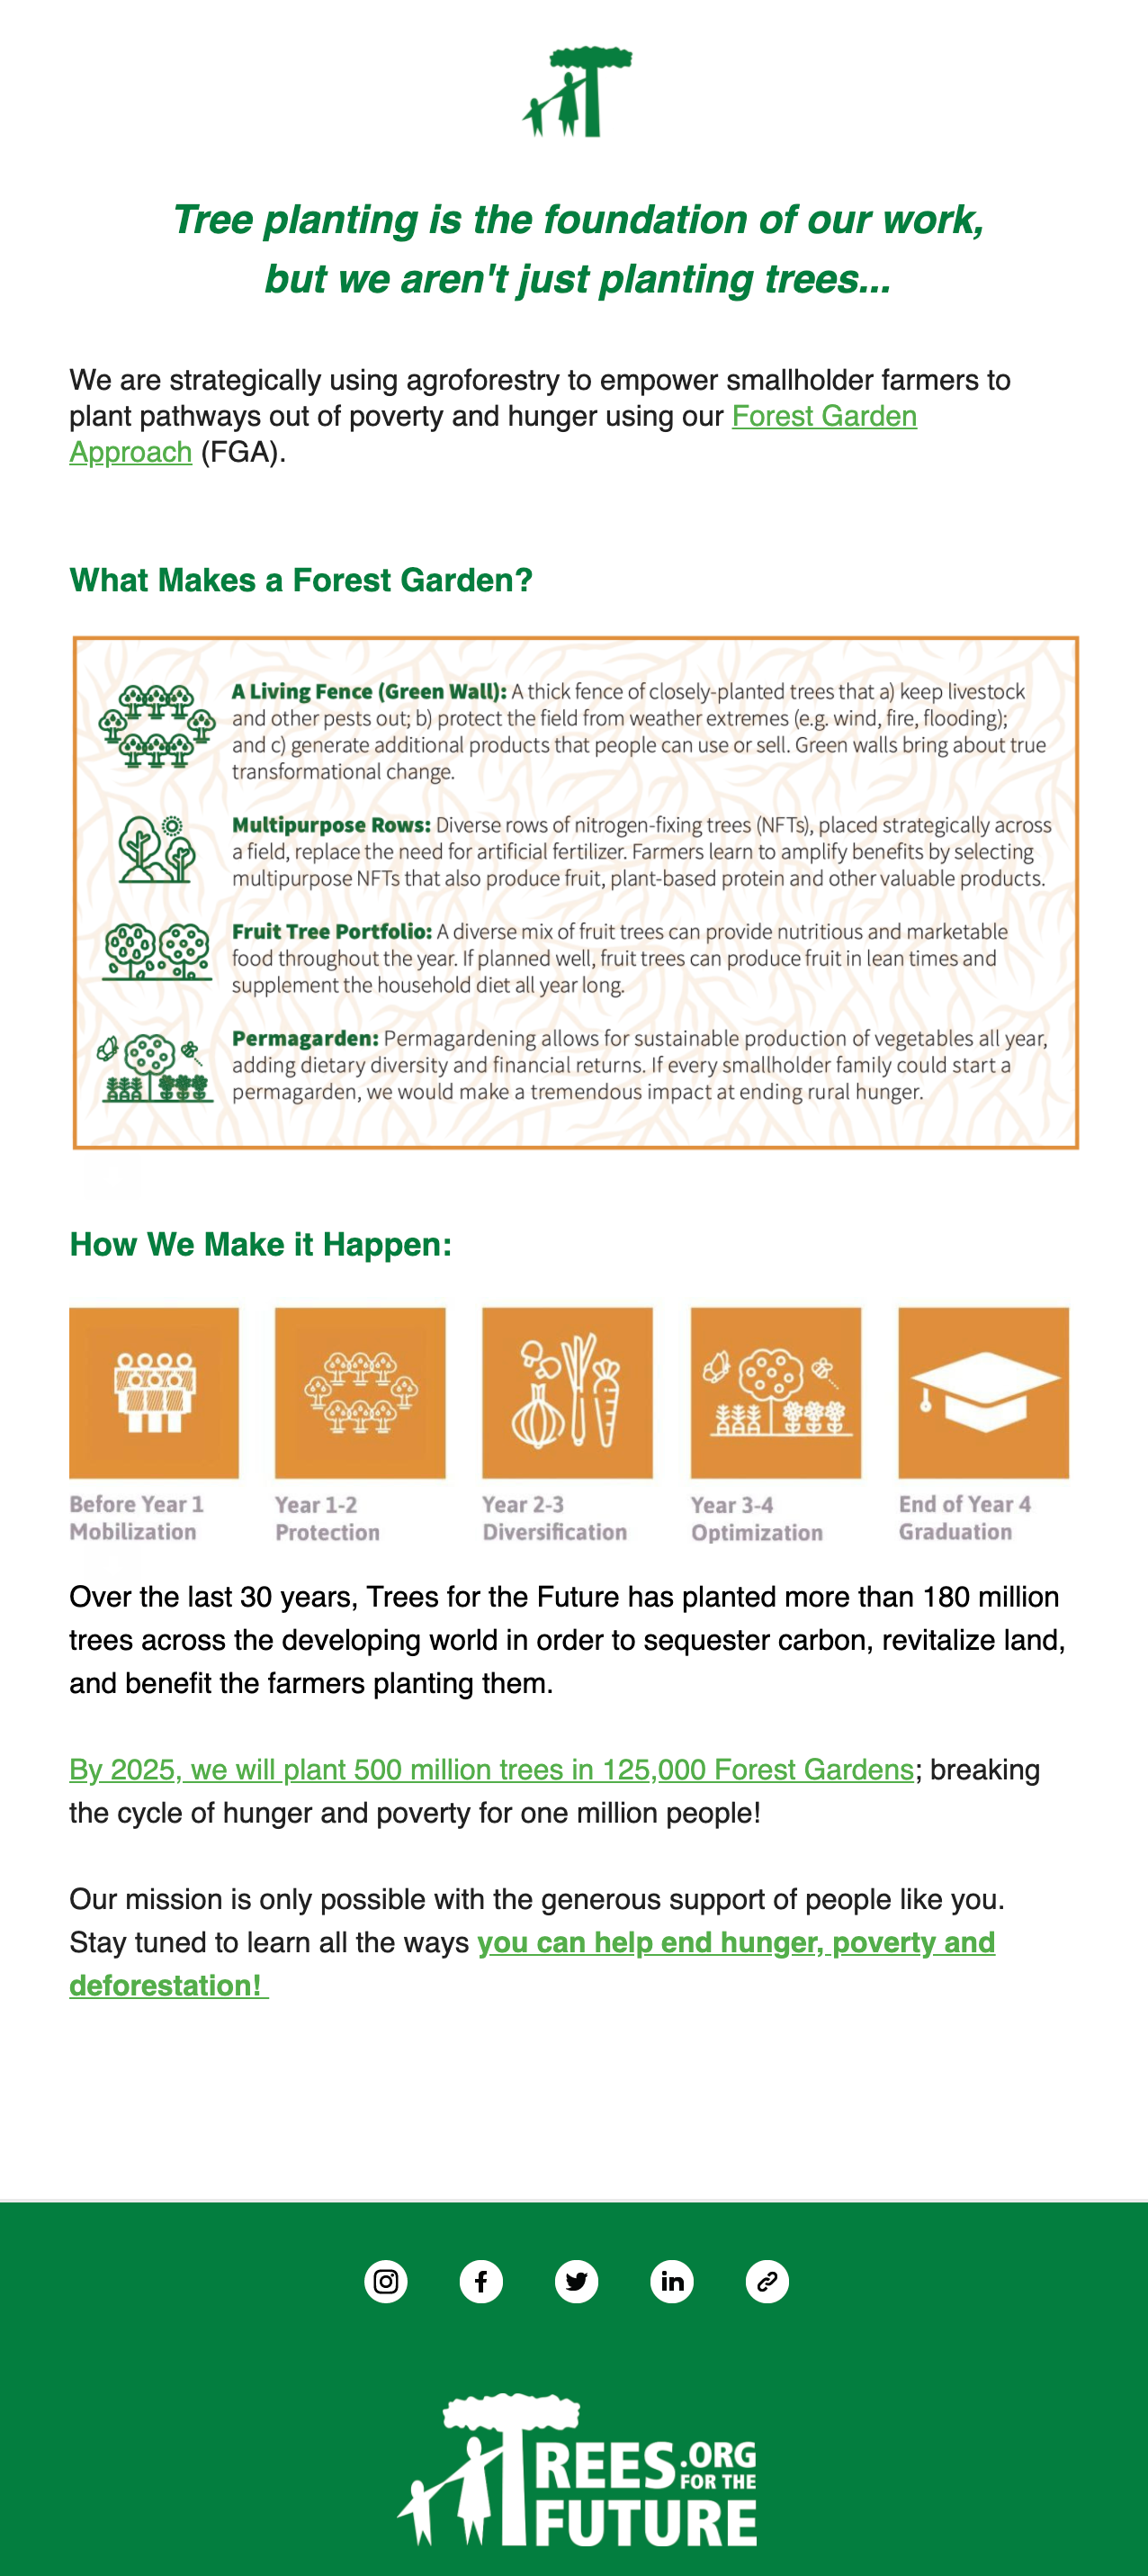 Image of second email in the welcome email series by TREES. This email goes into depth about the nonprofit's long-term goals and information on their Forest Garden Approach.